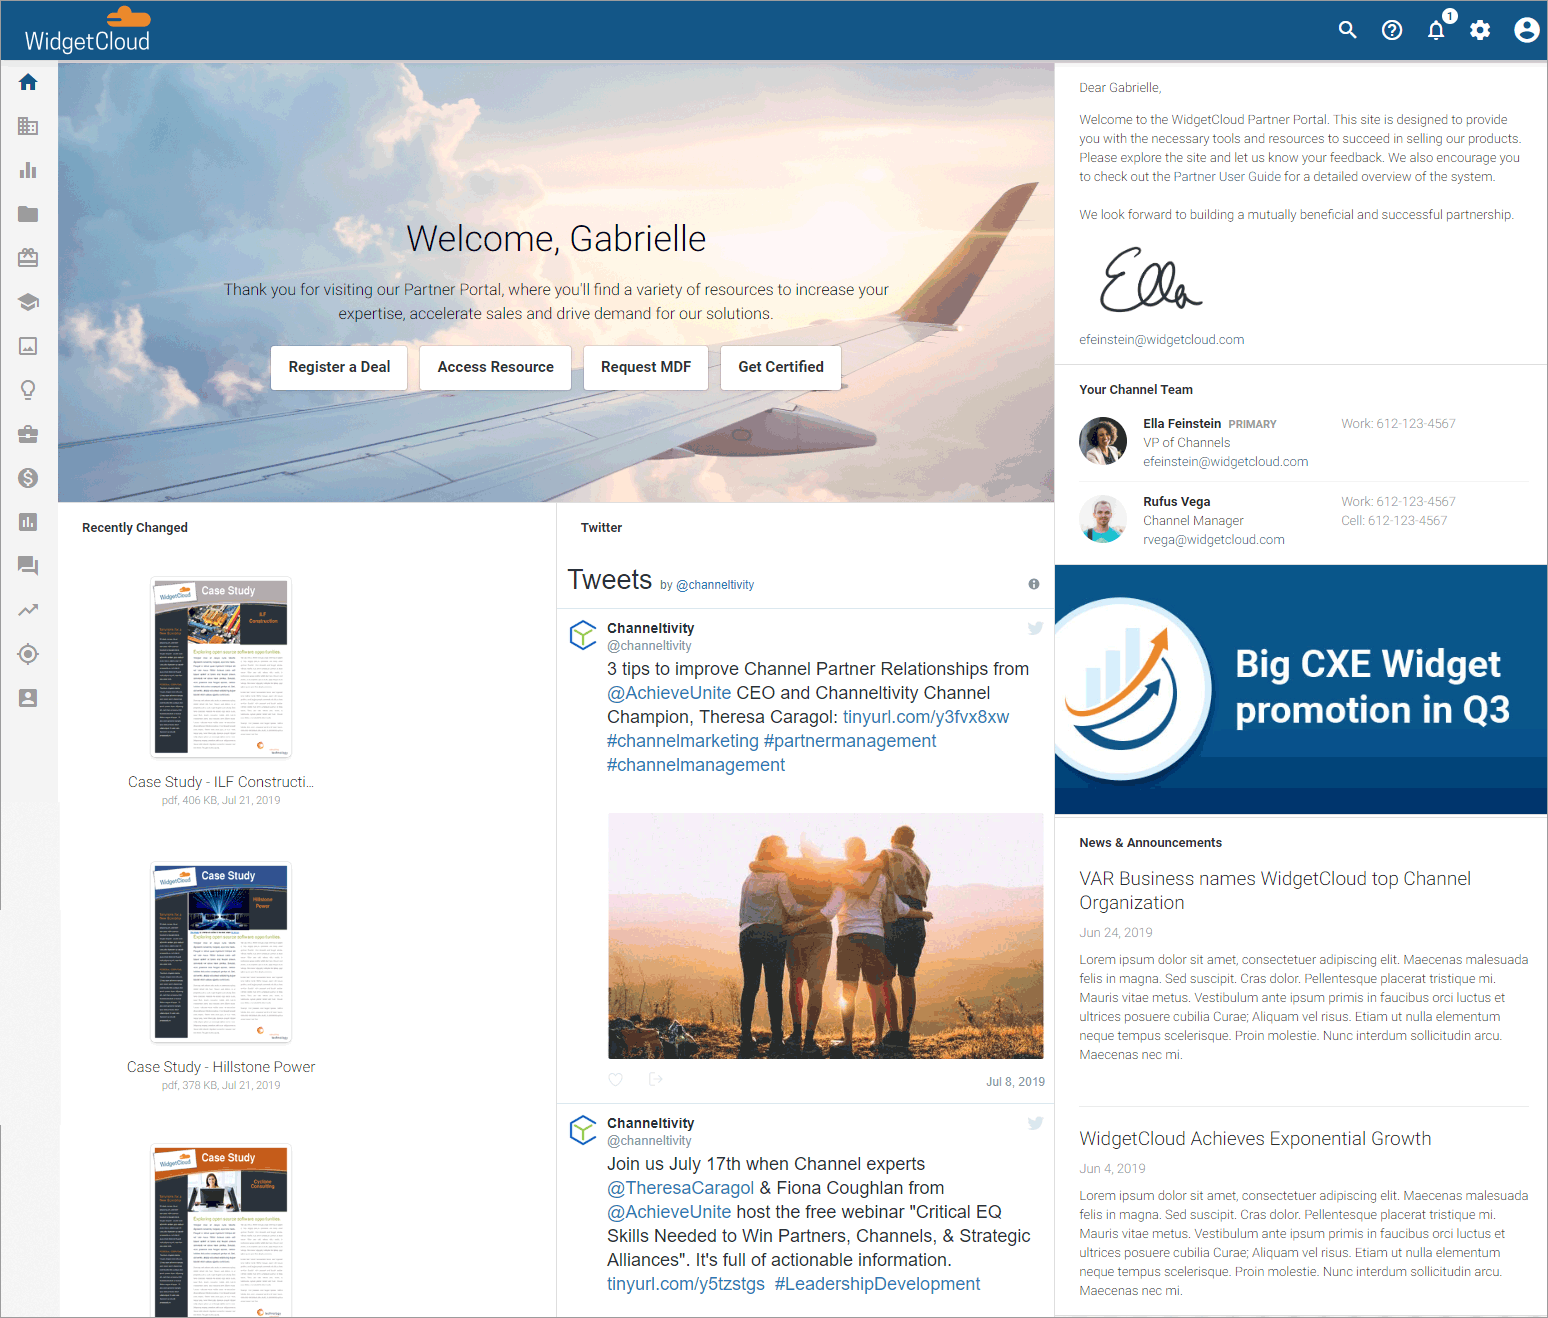 Best Practices for Designing your Partner Portal Home Page